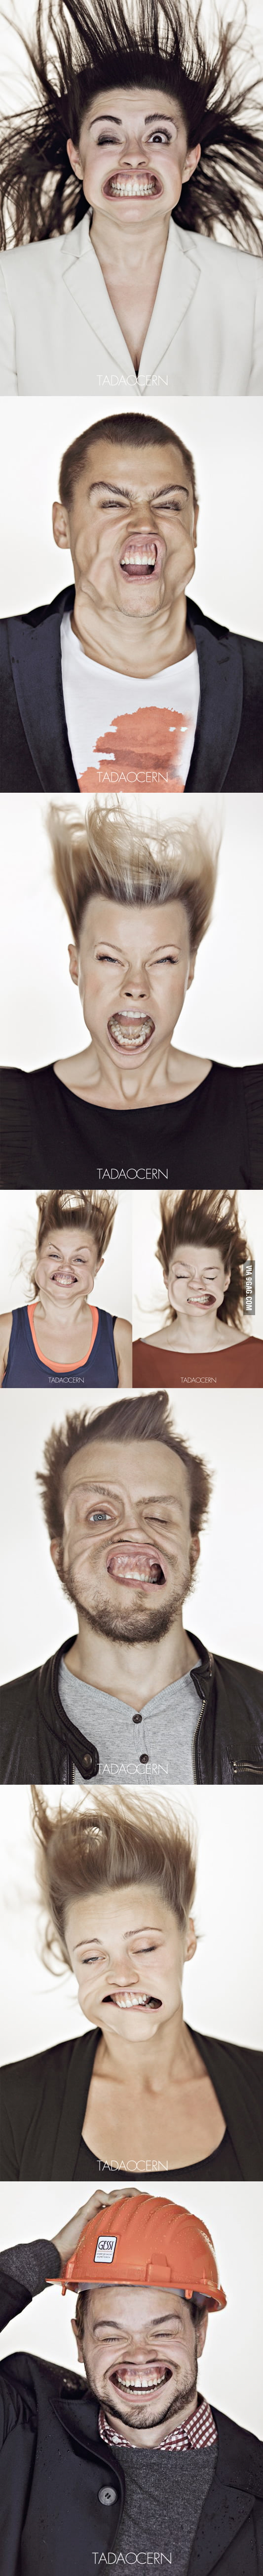 Gale-Force Winds, funny portraits.